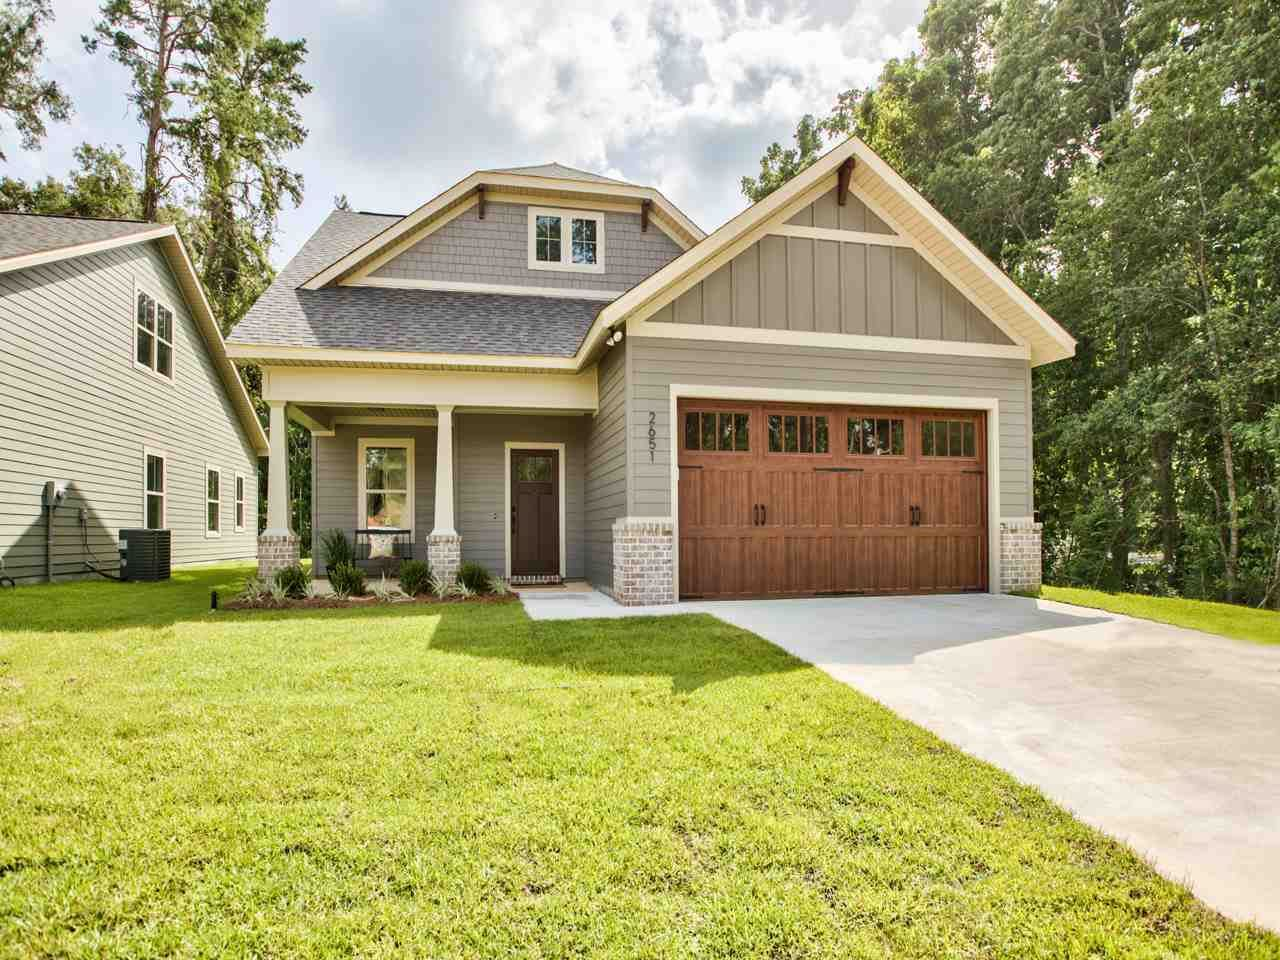 2666 Bending Way, Tallahassee, FL 32308 - MLS#: 331557